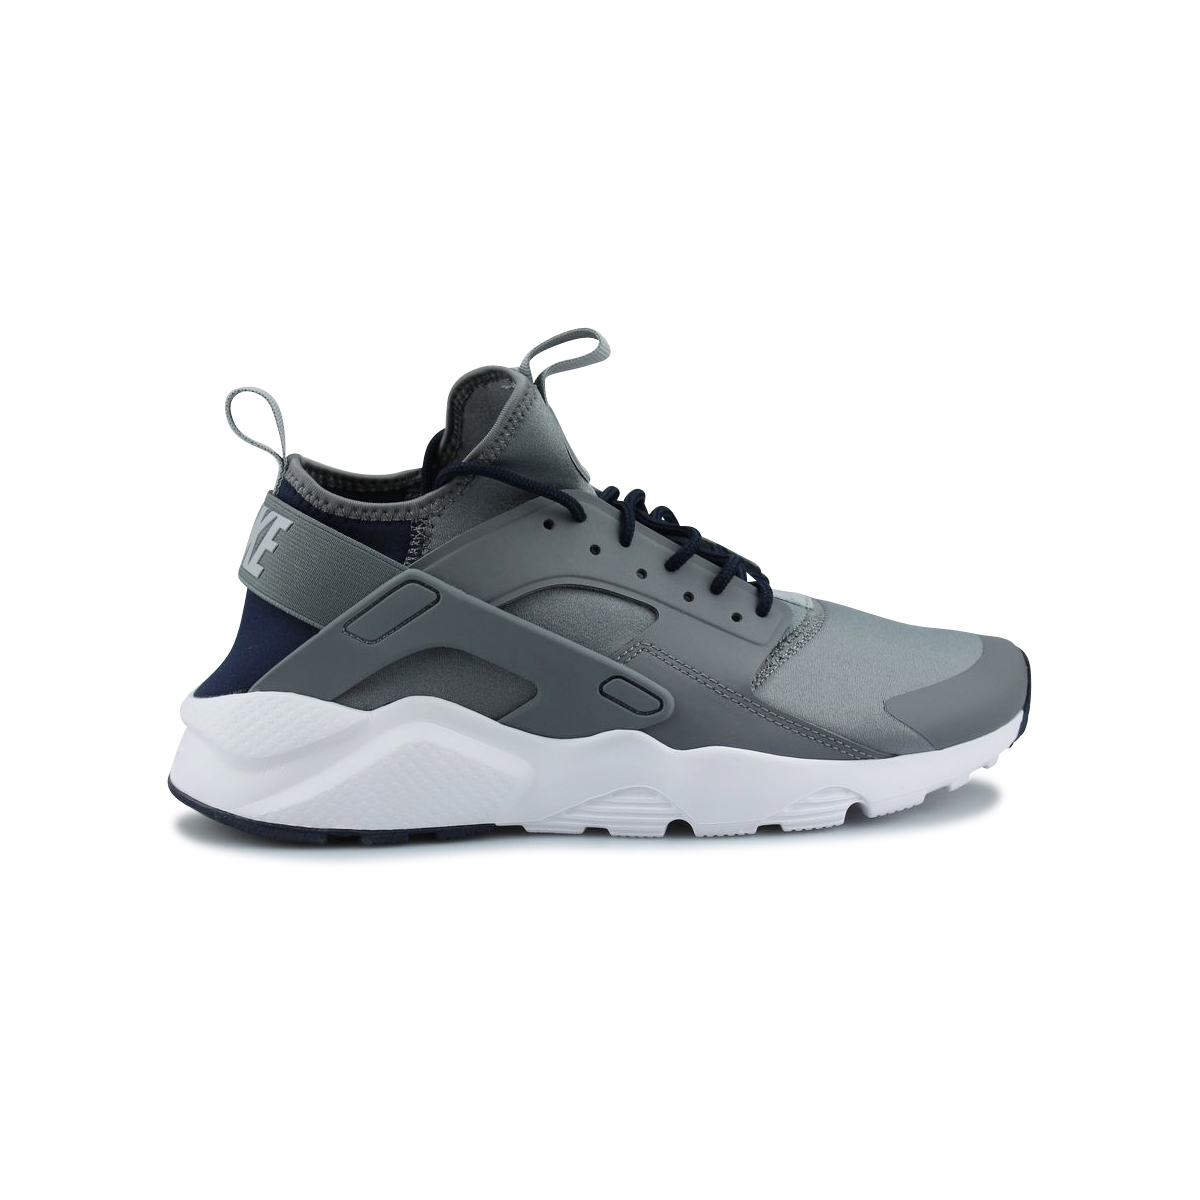 NIKE AIR HUARACHE RUN ULTRA GRIS FRAIS 819685,013